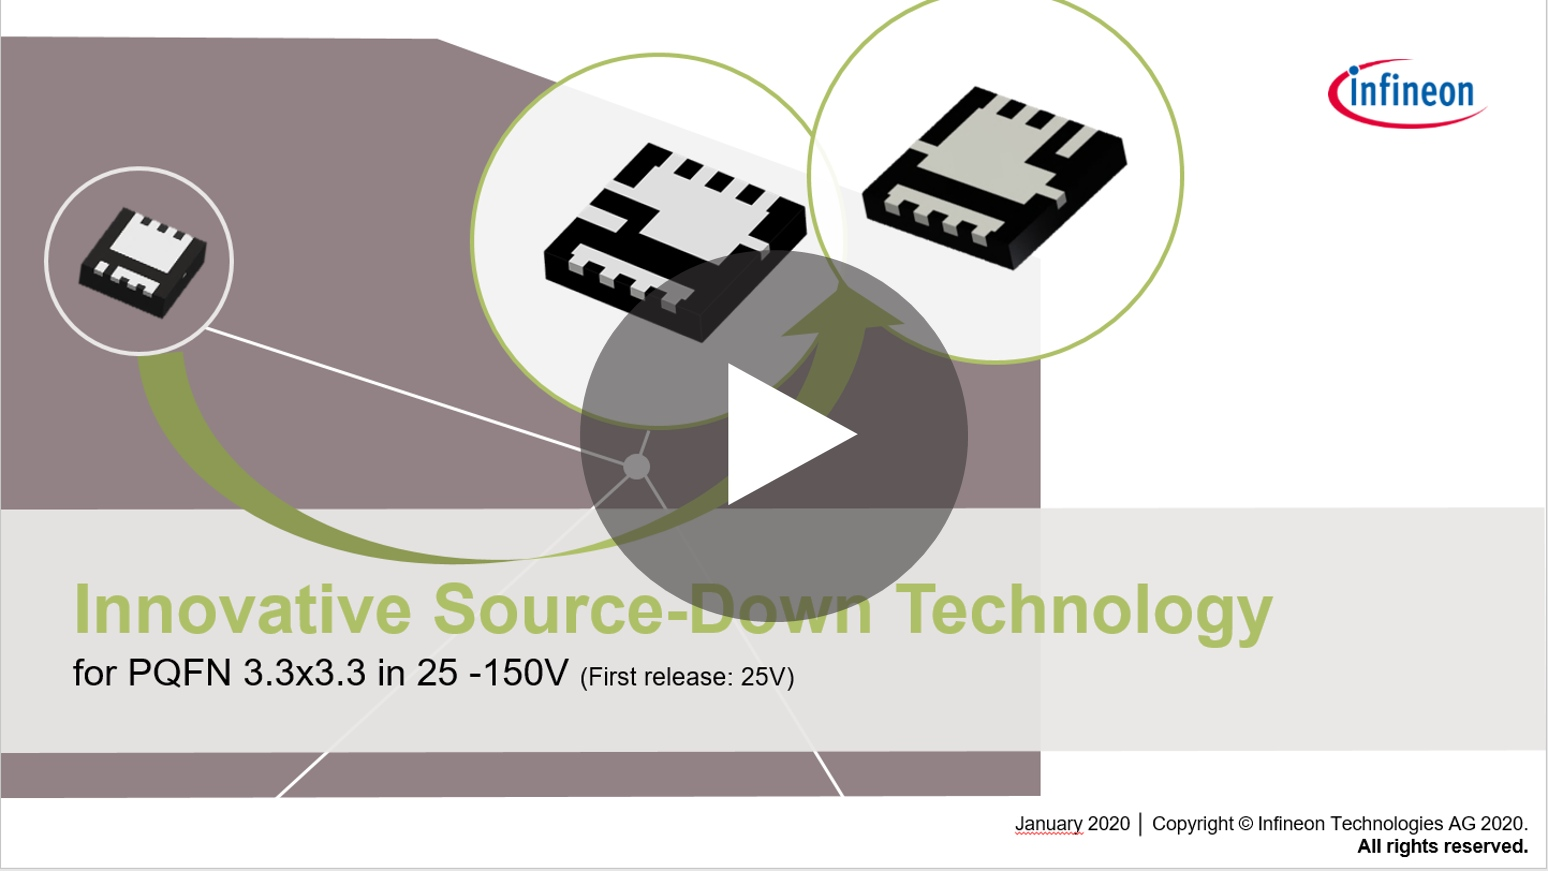 Infineon e-learning Source-Dowon Technology for PQFN 25V